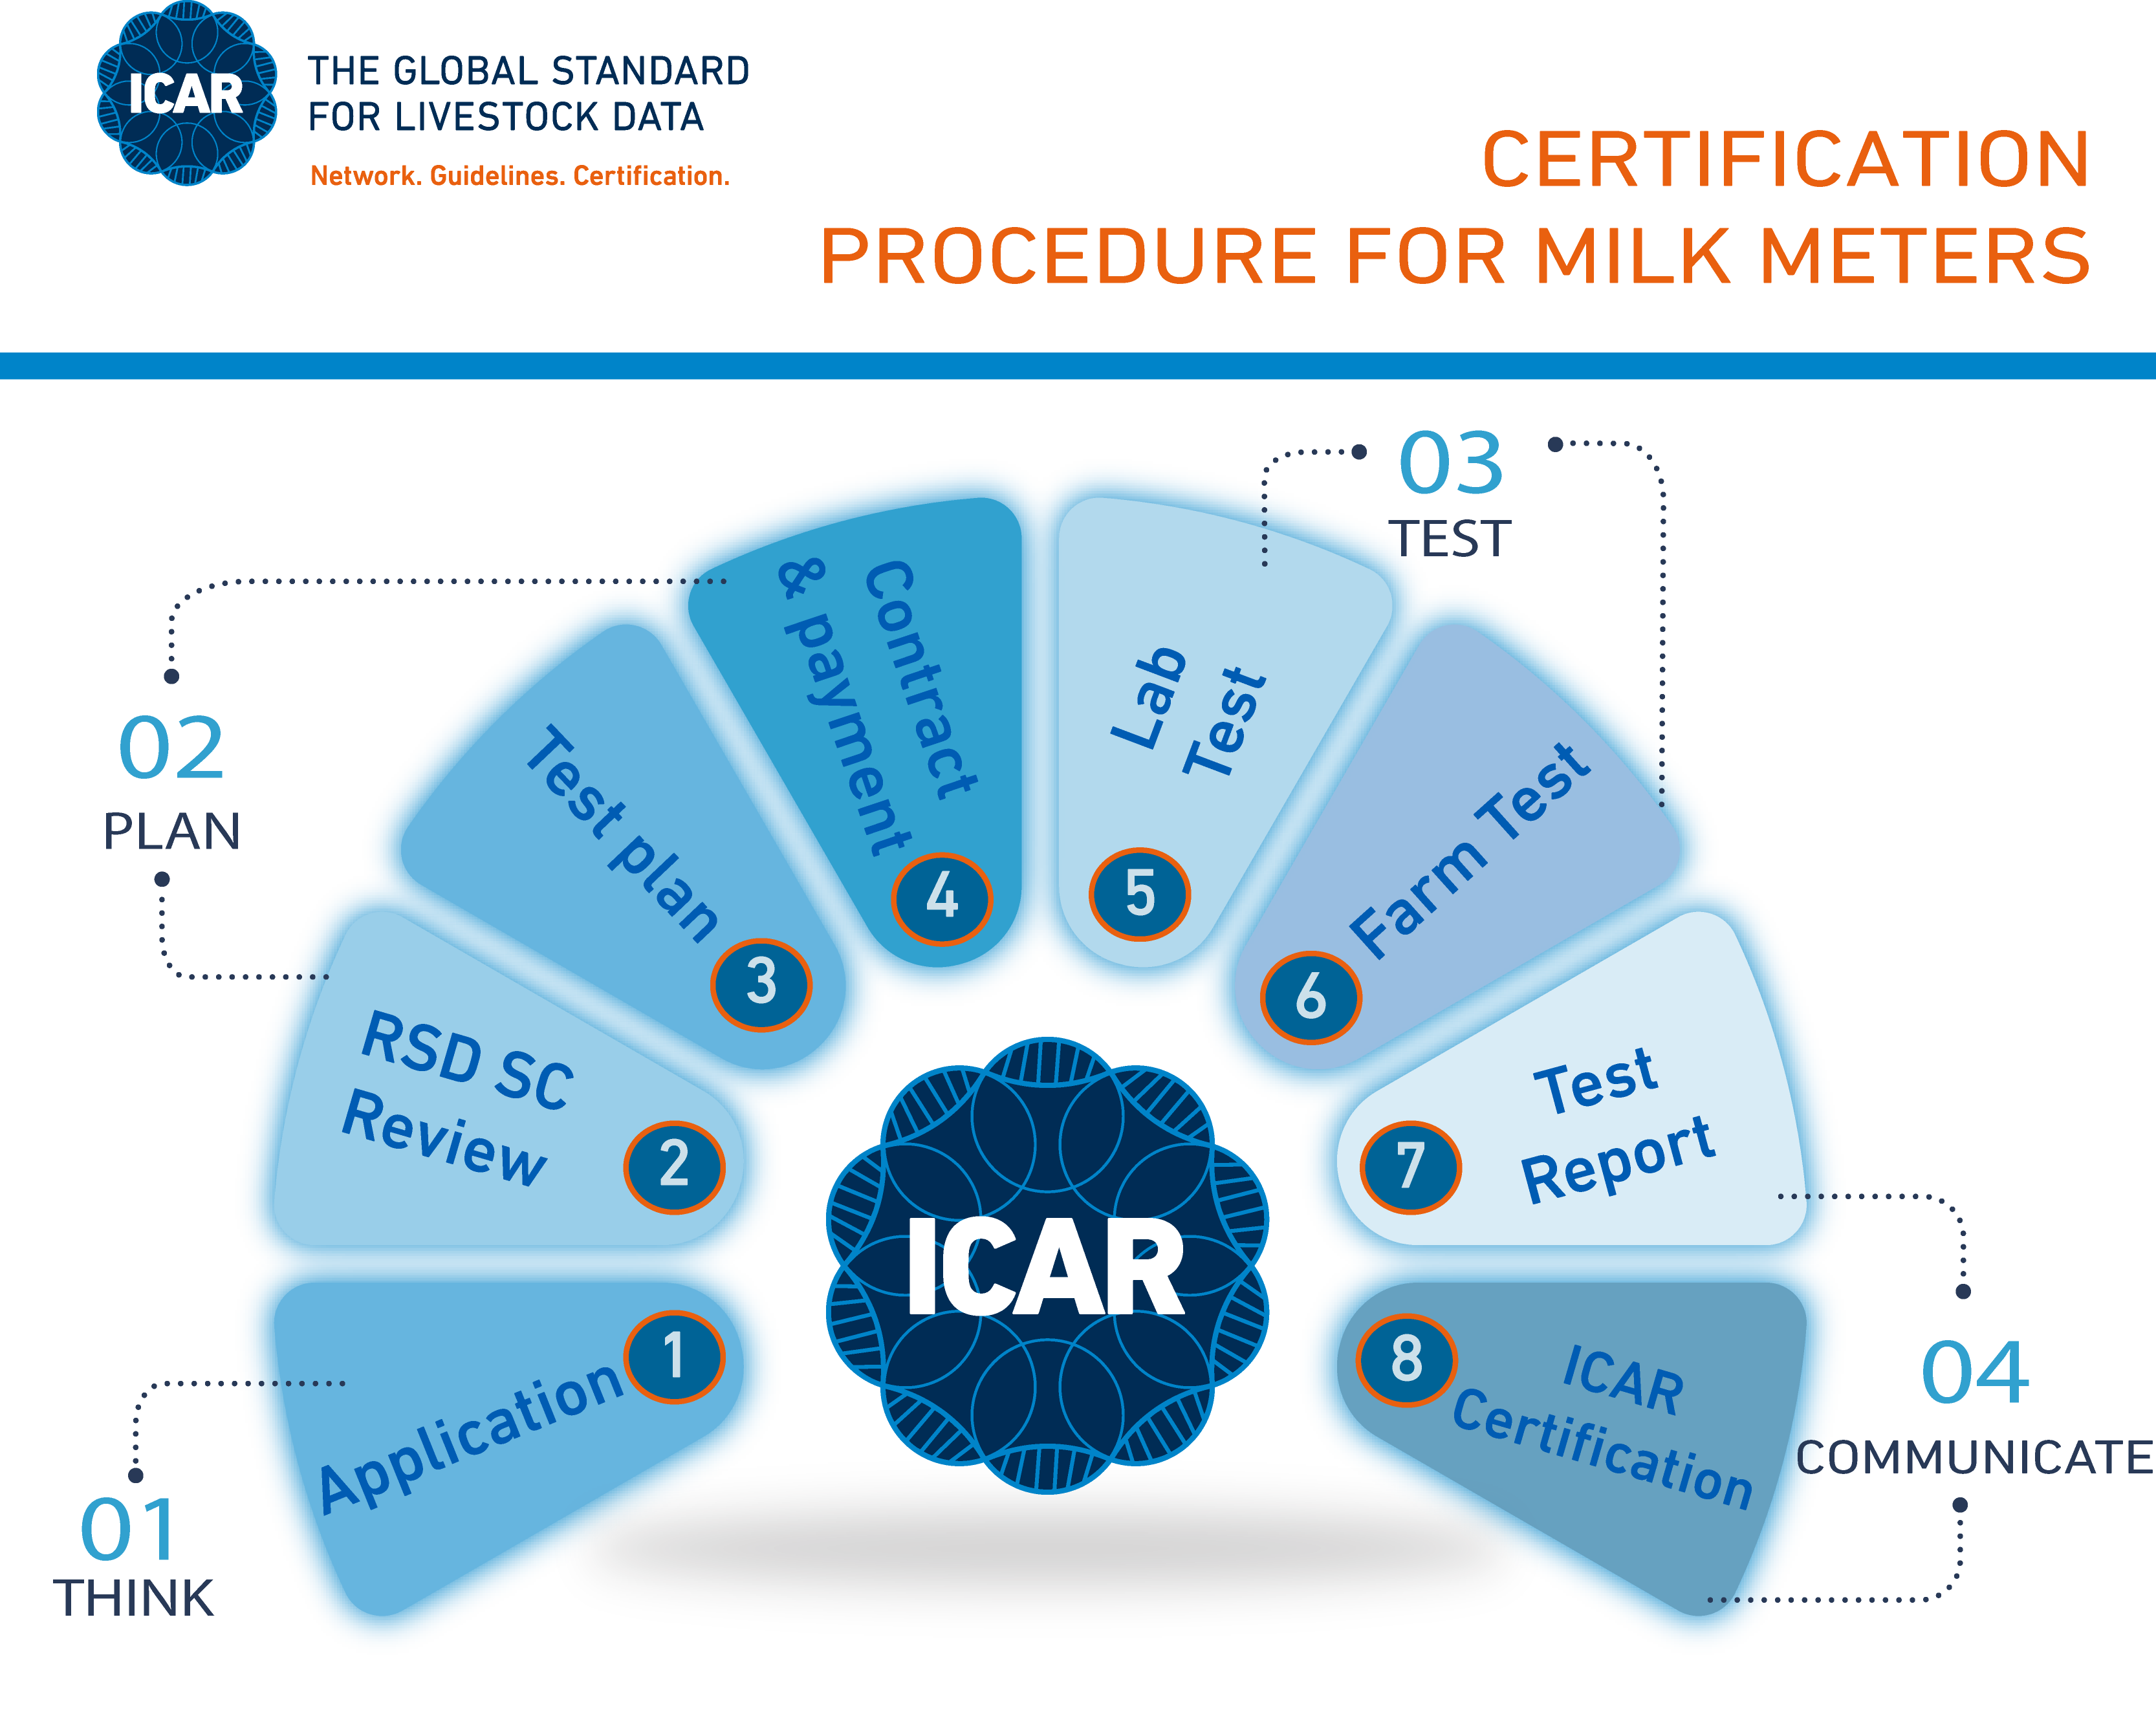 Steps to submit a device for icar testing icar the devices used for the purposes of official milk recording must be icar certified based on icar guidelines section 11 which details the rules xflitez Choice Image